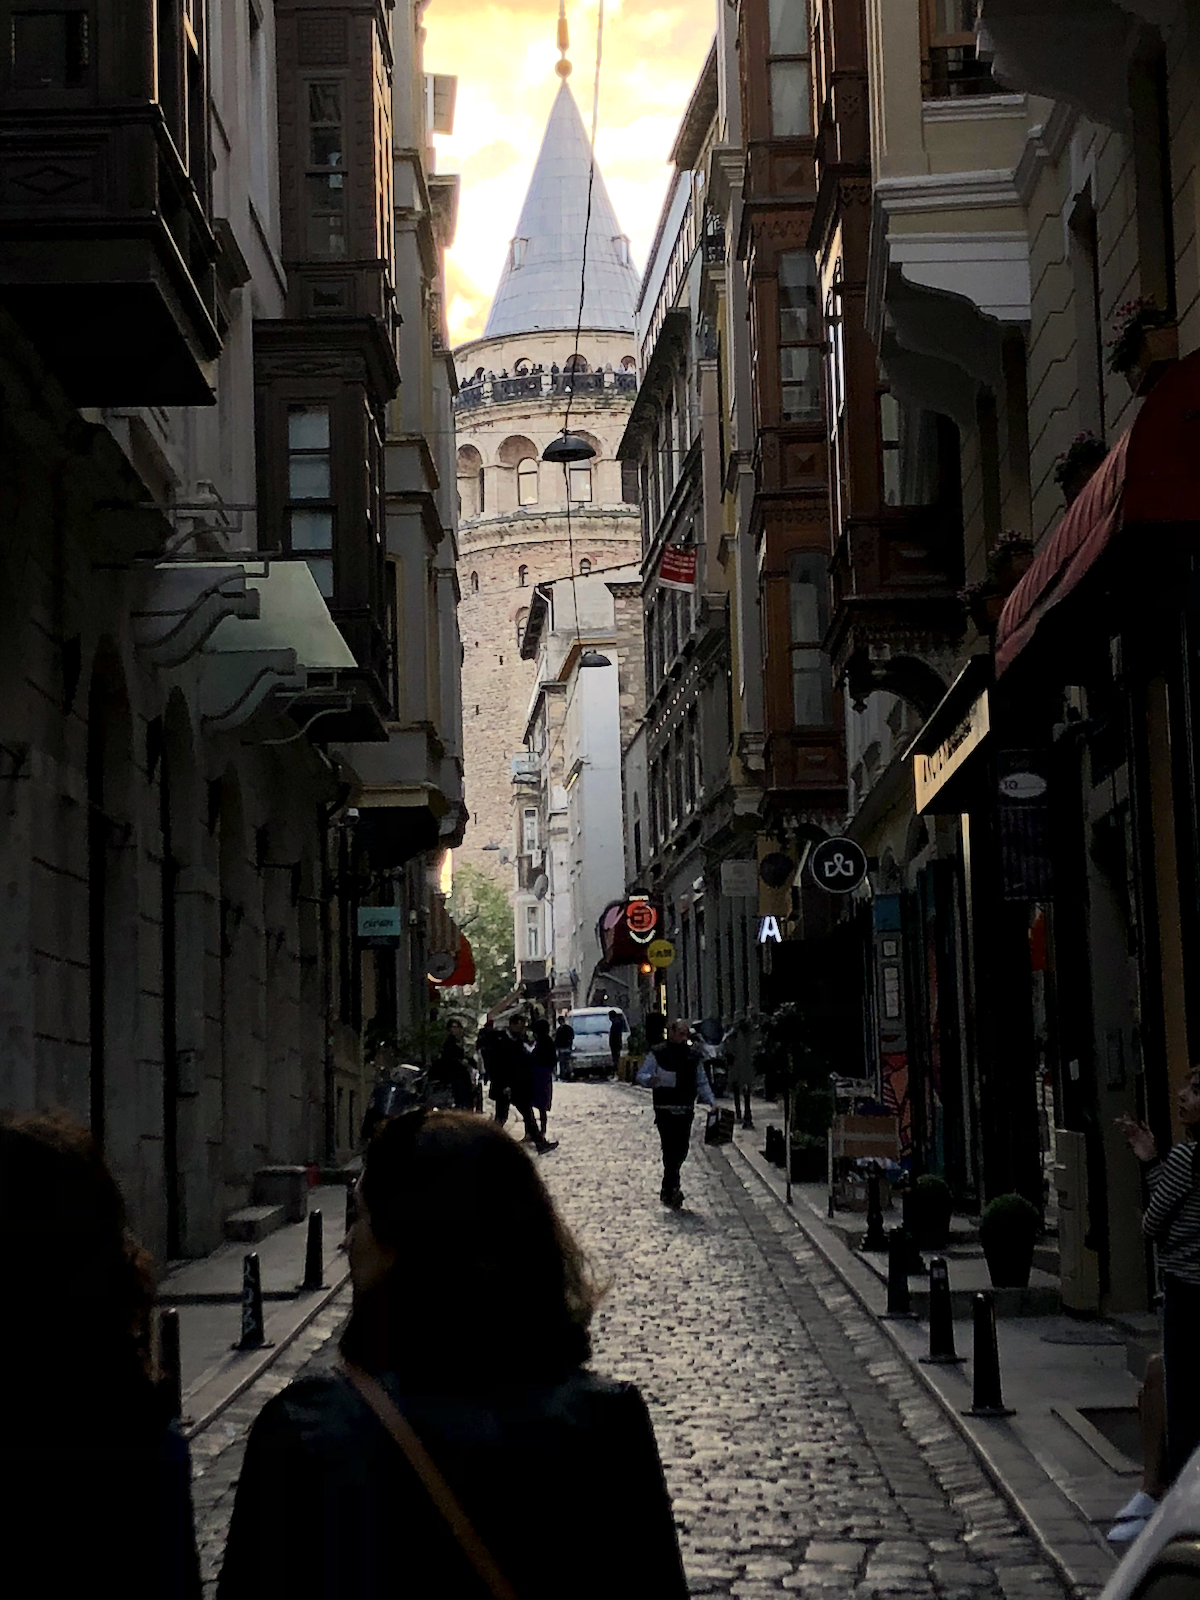 Beyoglu - Top 11 Things to Do In Istanbul